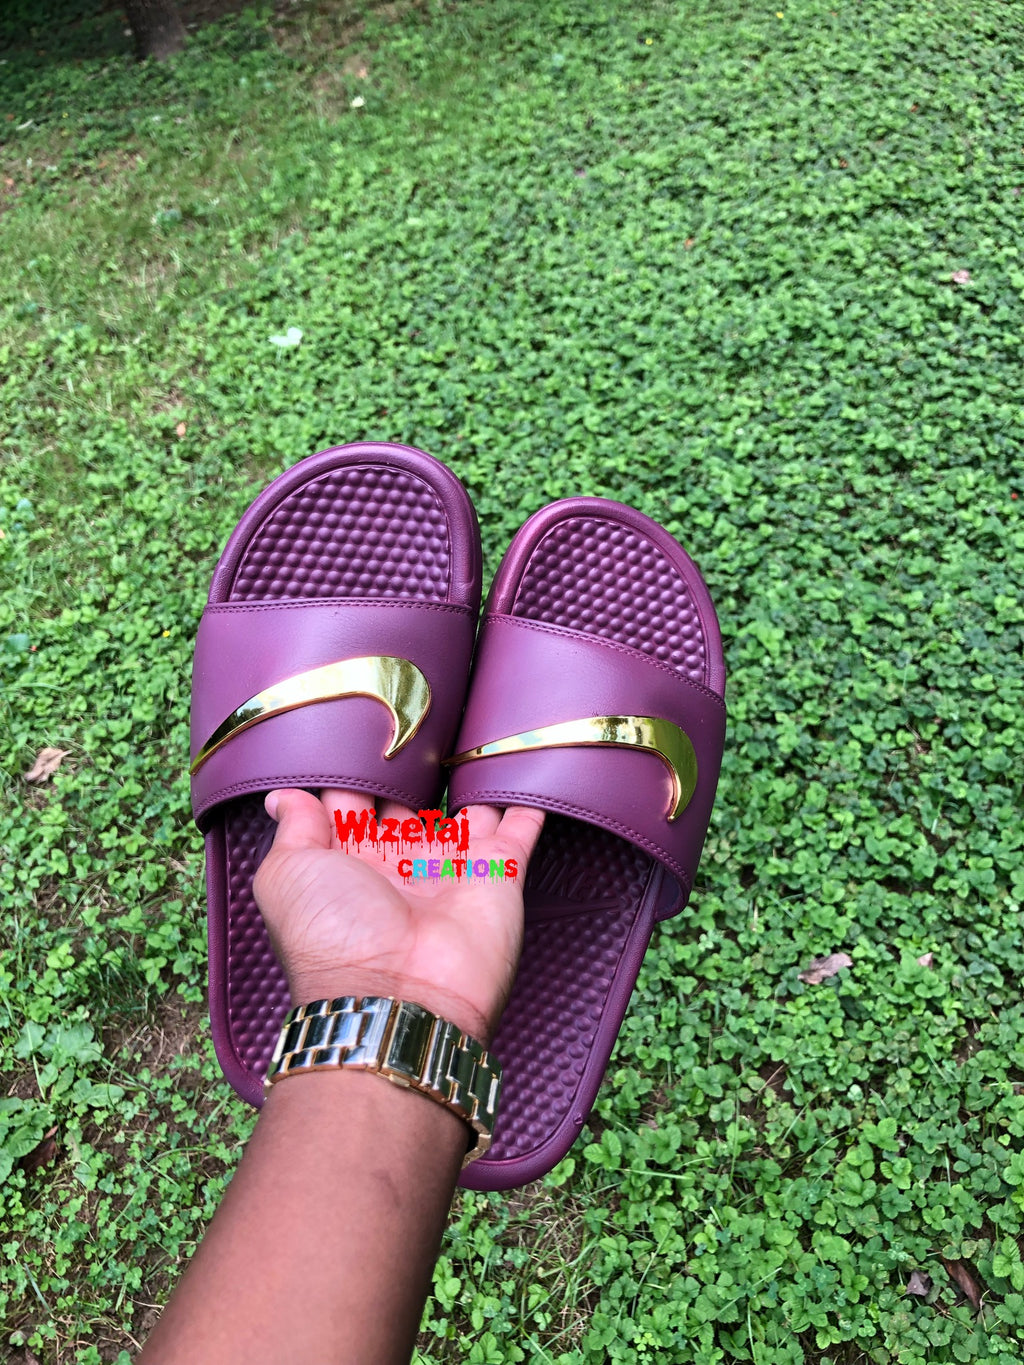 c8531a5ba Nike Benassi Royal Golden Check Slides Custom Nike Slides in